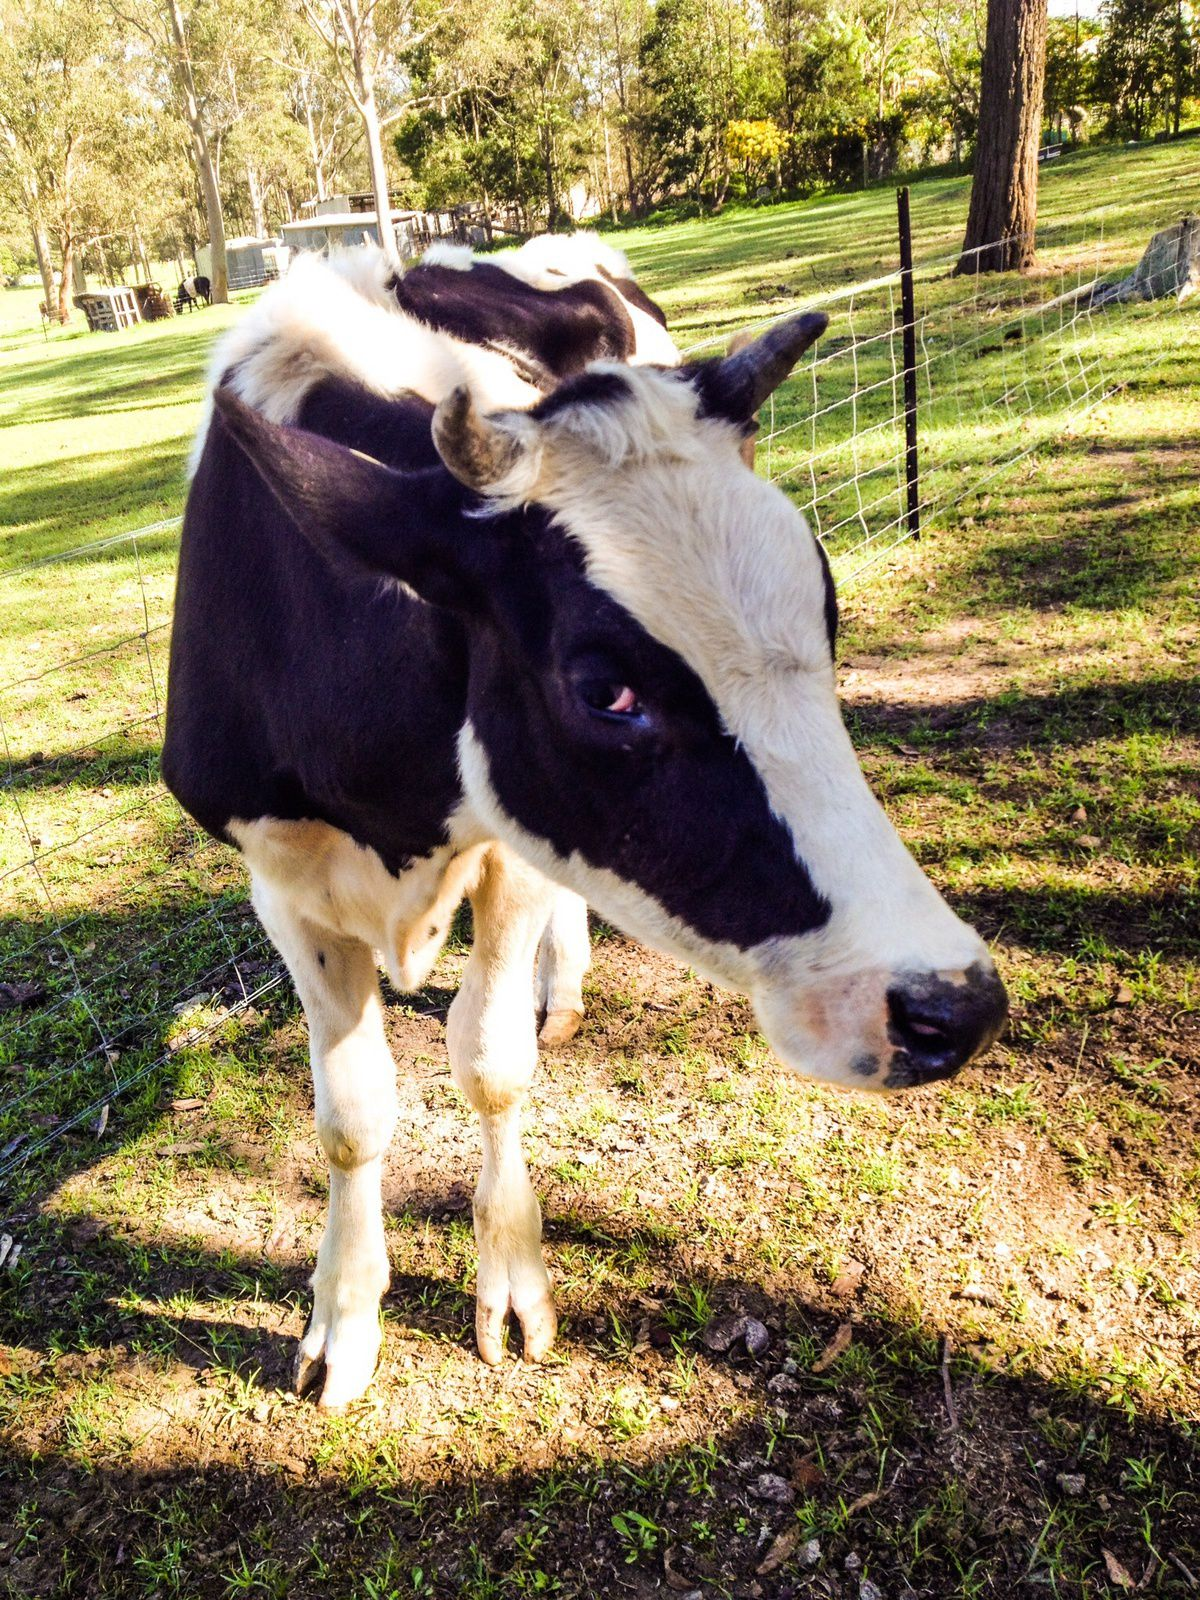 Billy the cow